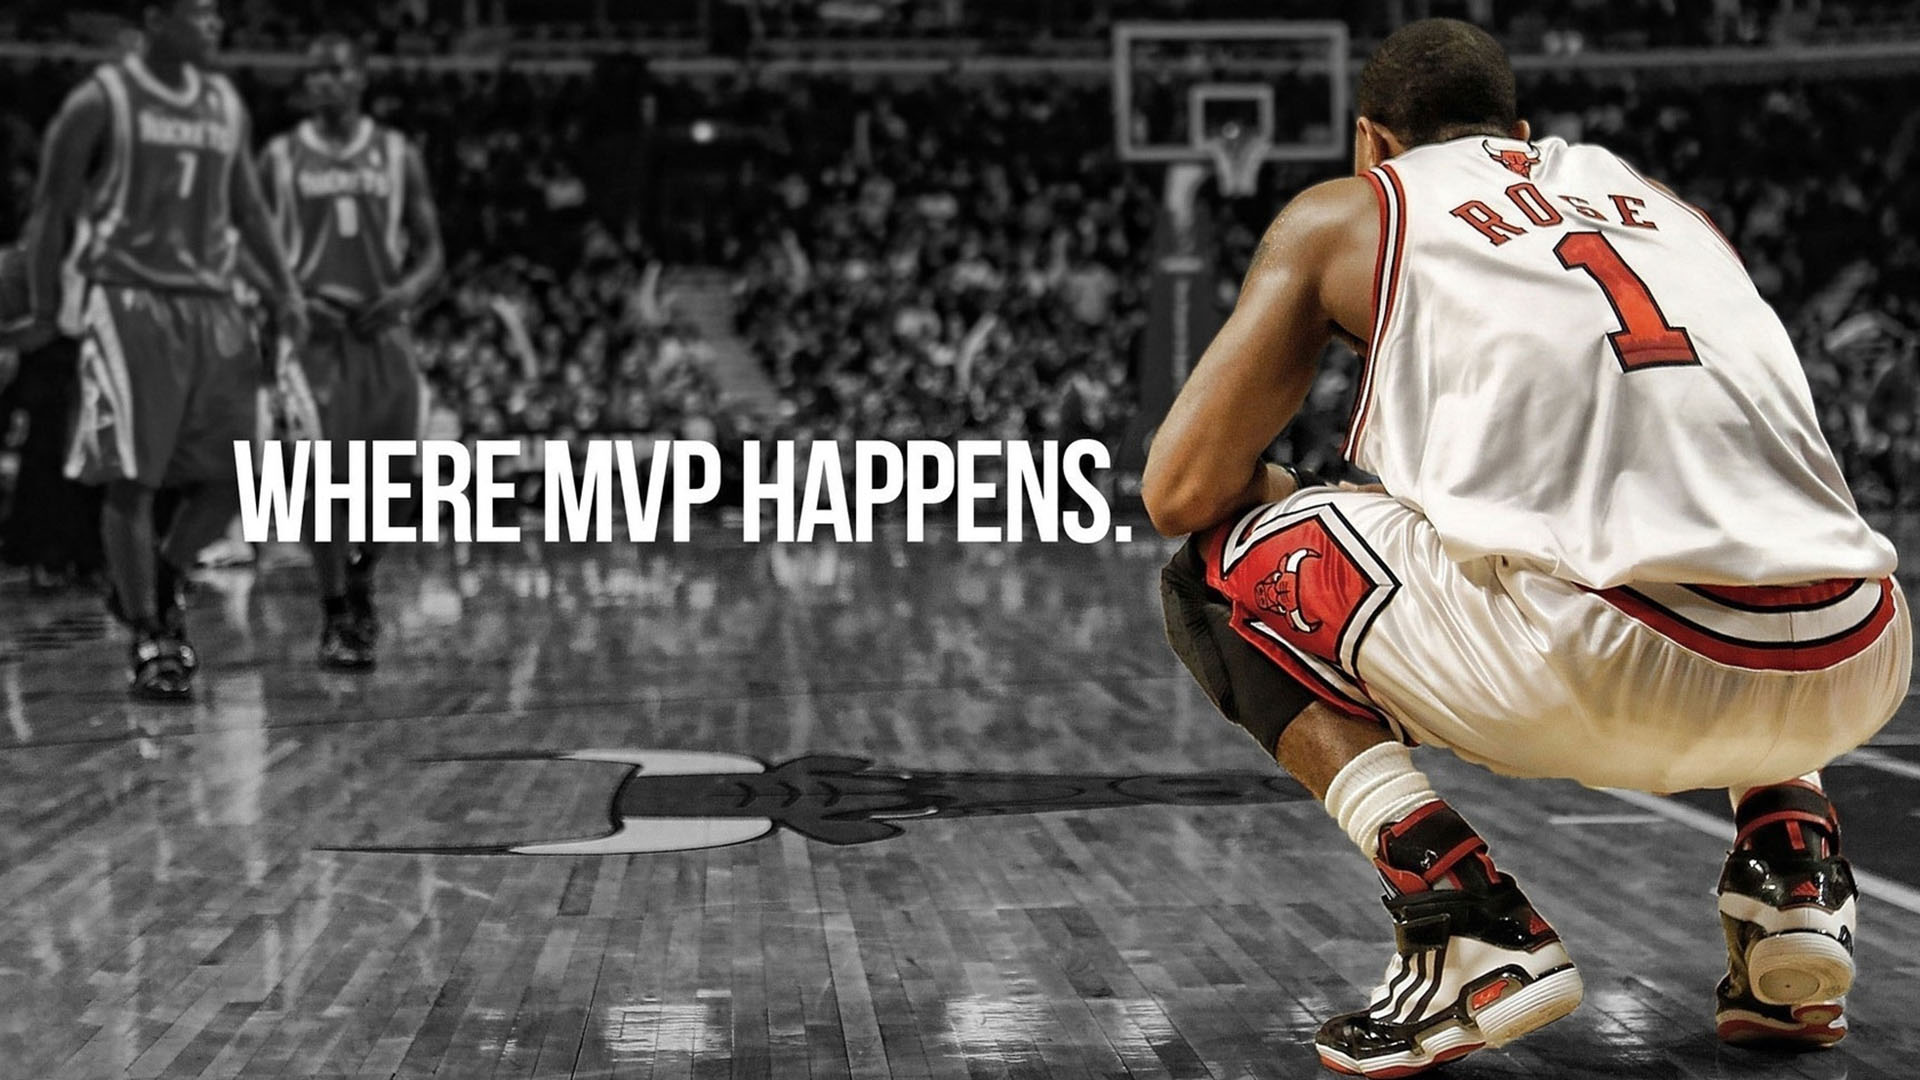 ... Where MPV Happens - Derrick Rose HD Wallpaper ...